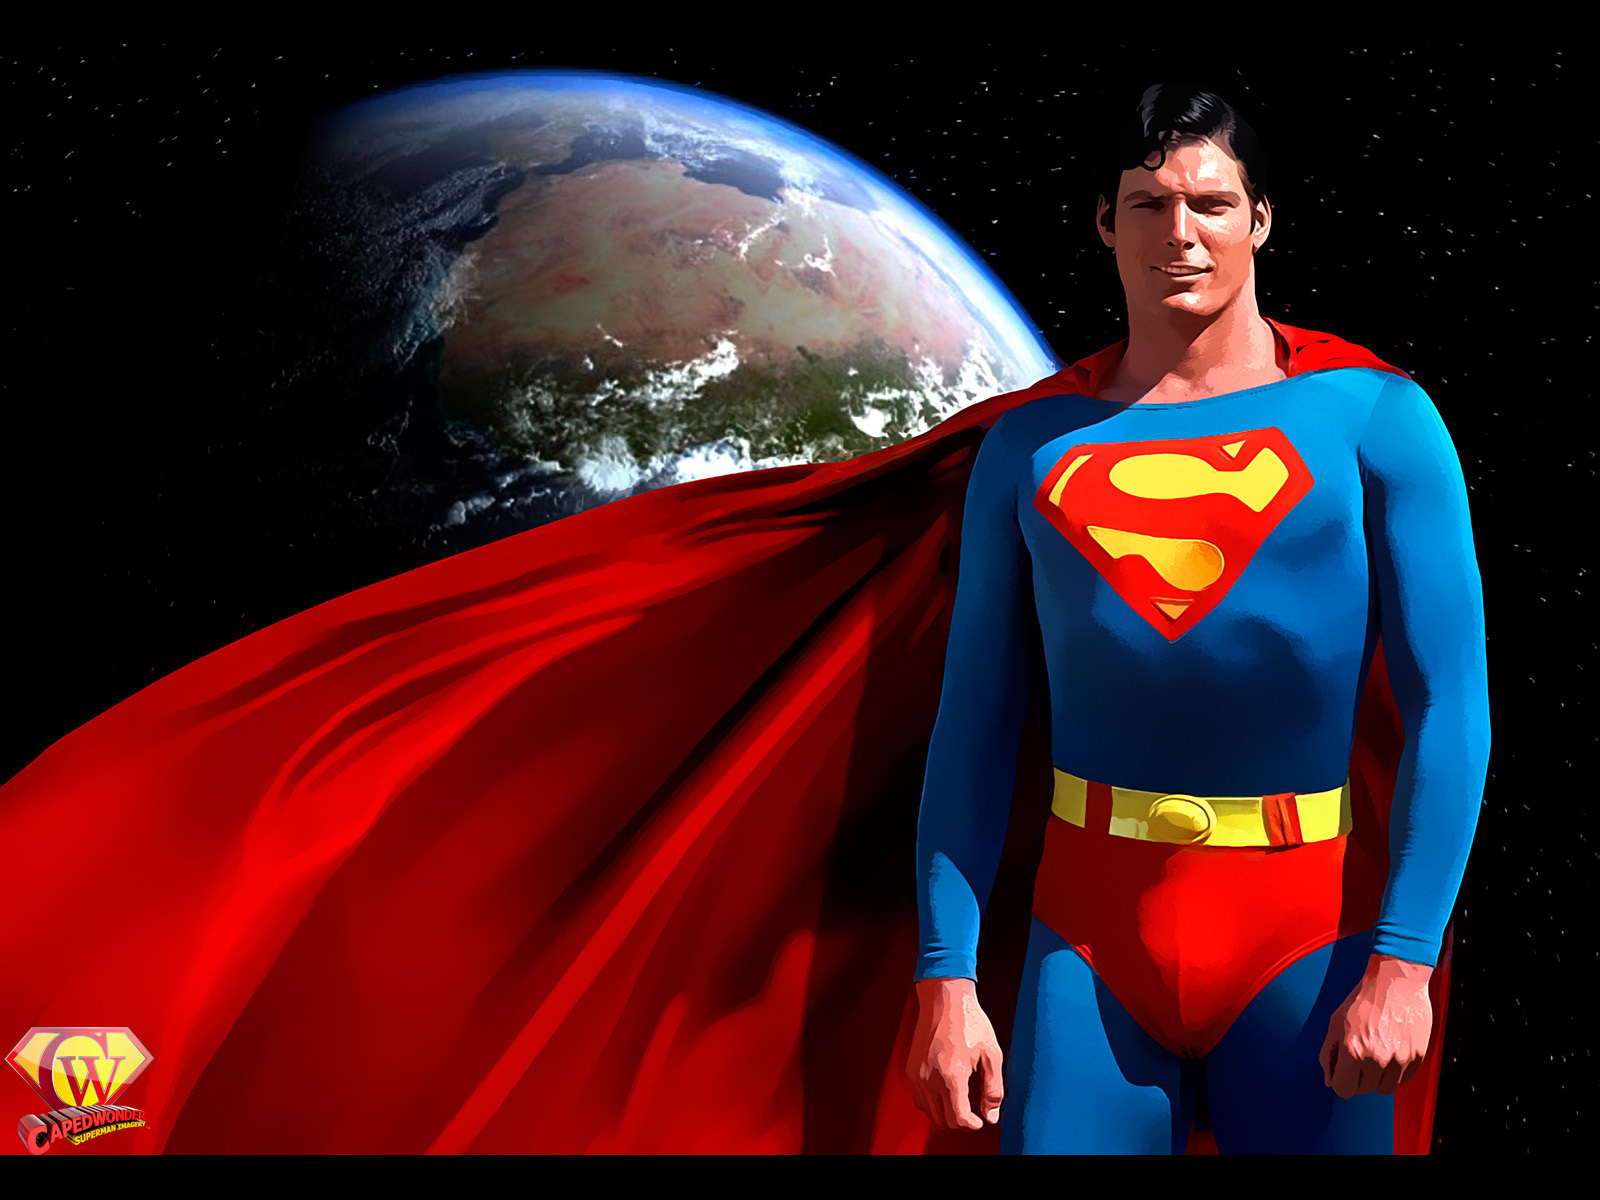 superman the movie images superman hd wallpaper and background